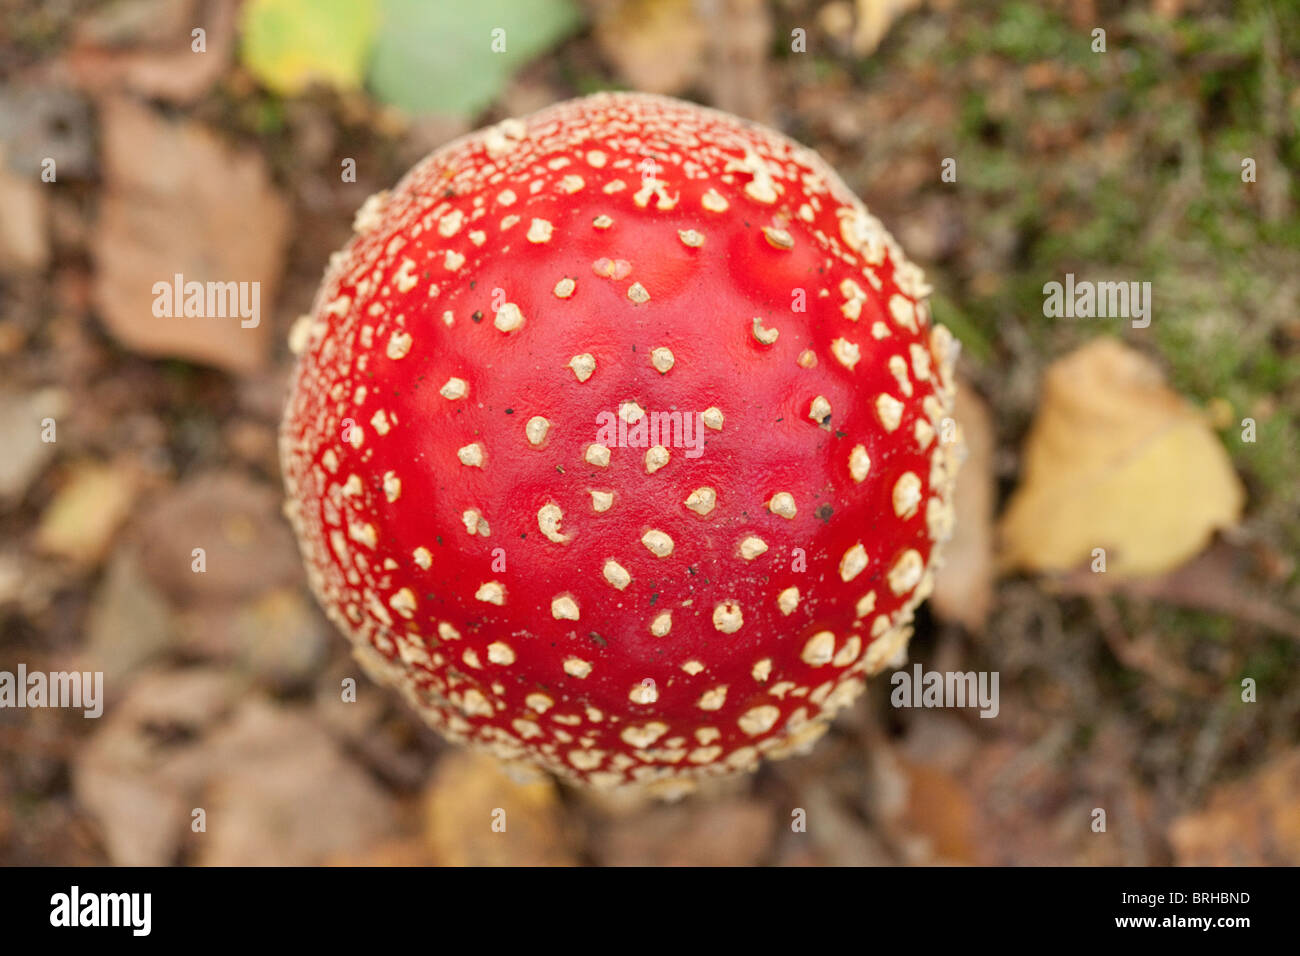 Fly Agaric hood. Fall 2010, Herperduin, Herpen, The Netherlands. - Stock Image